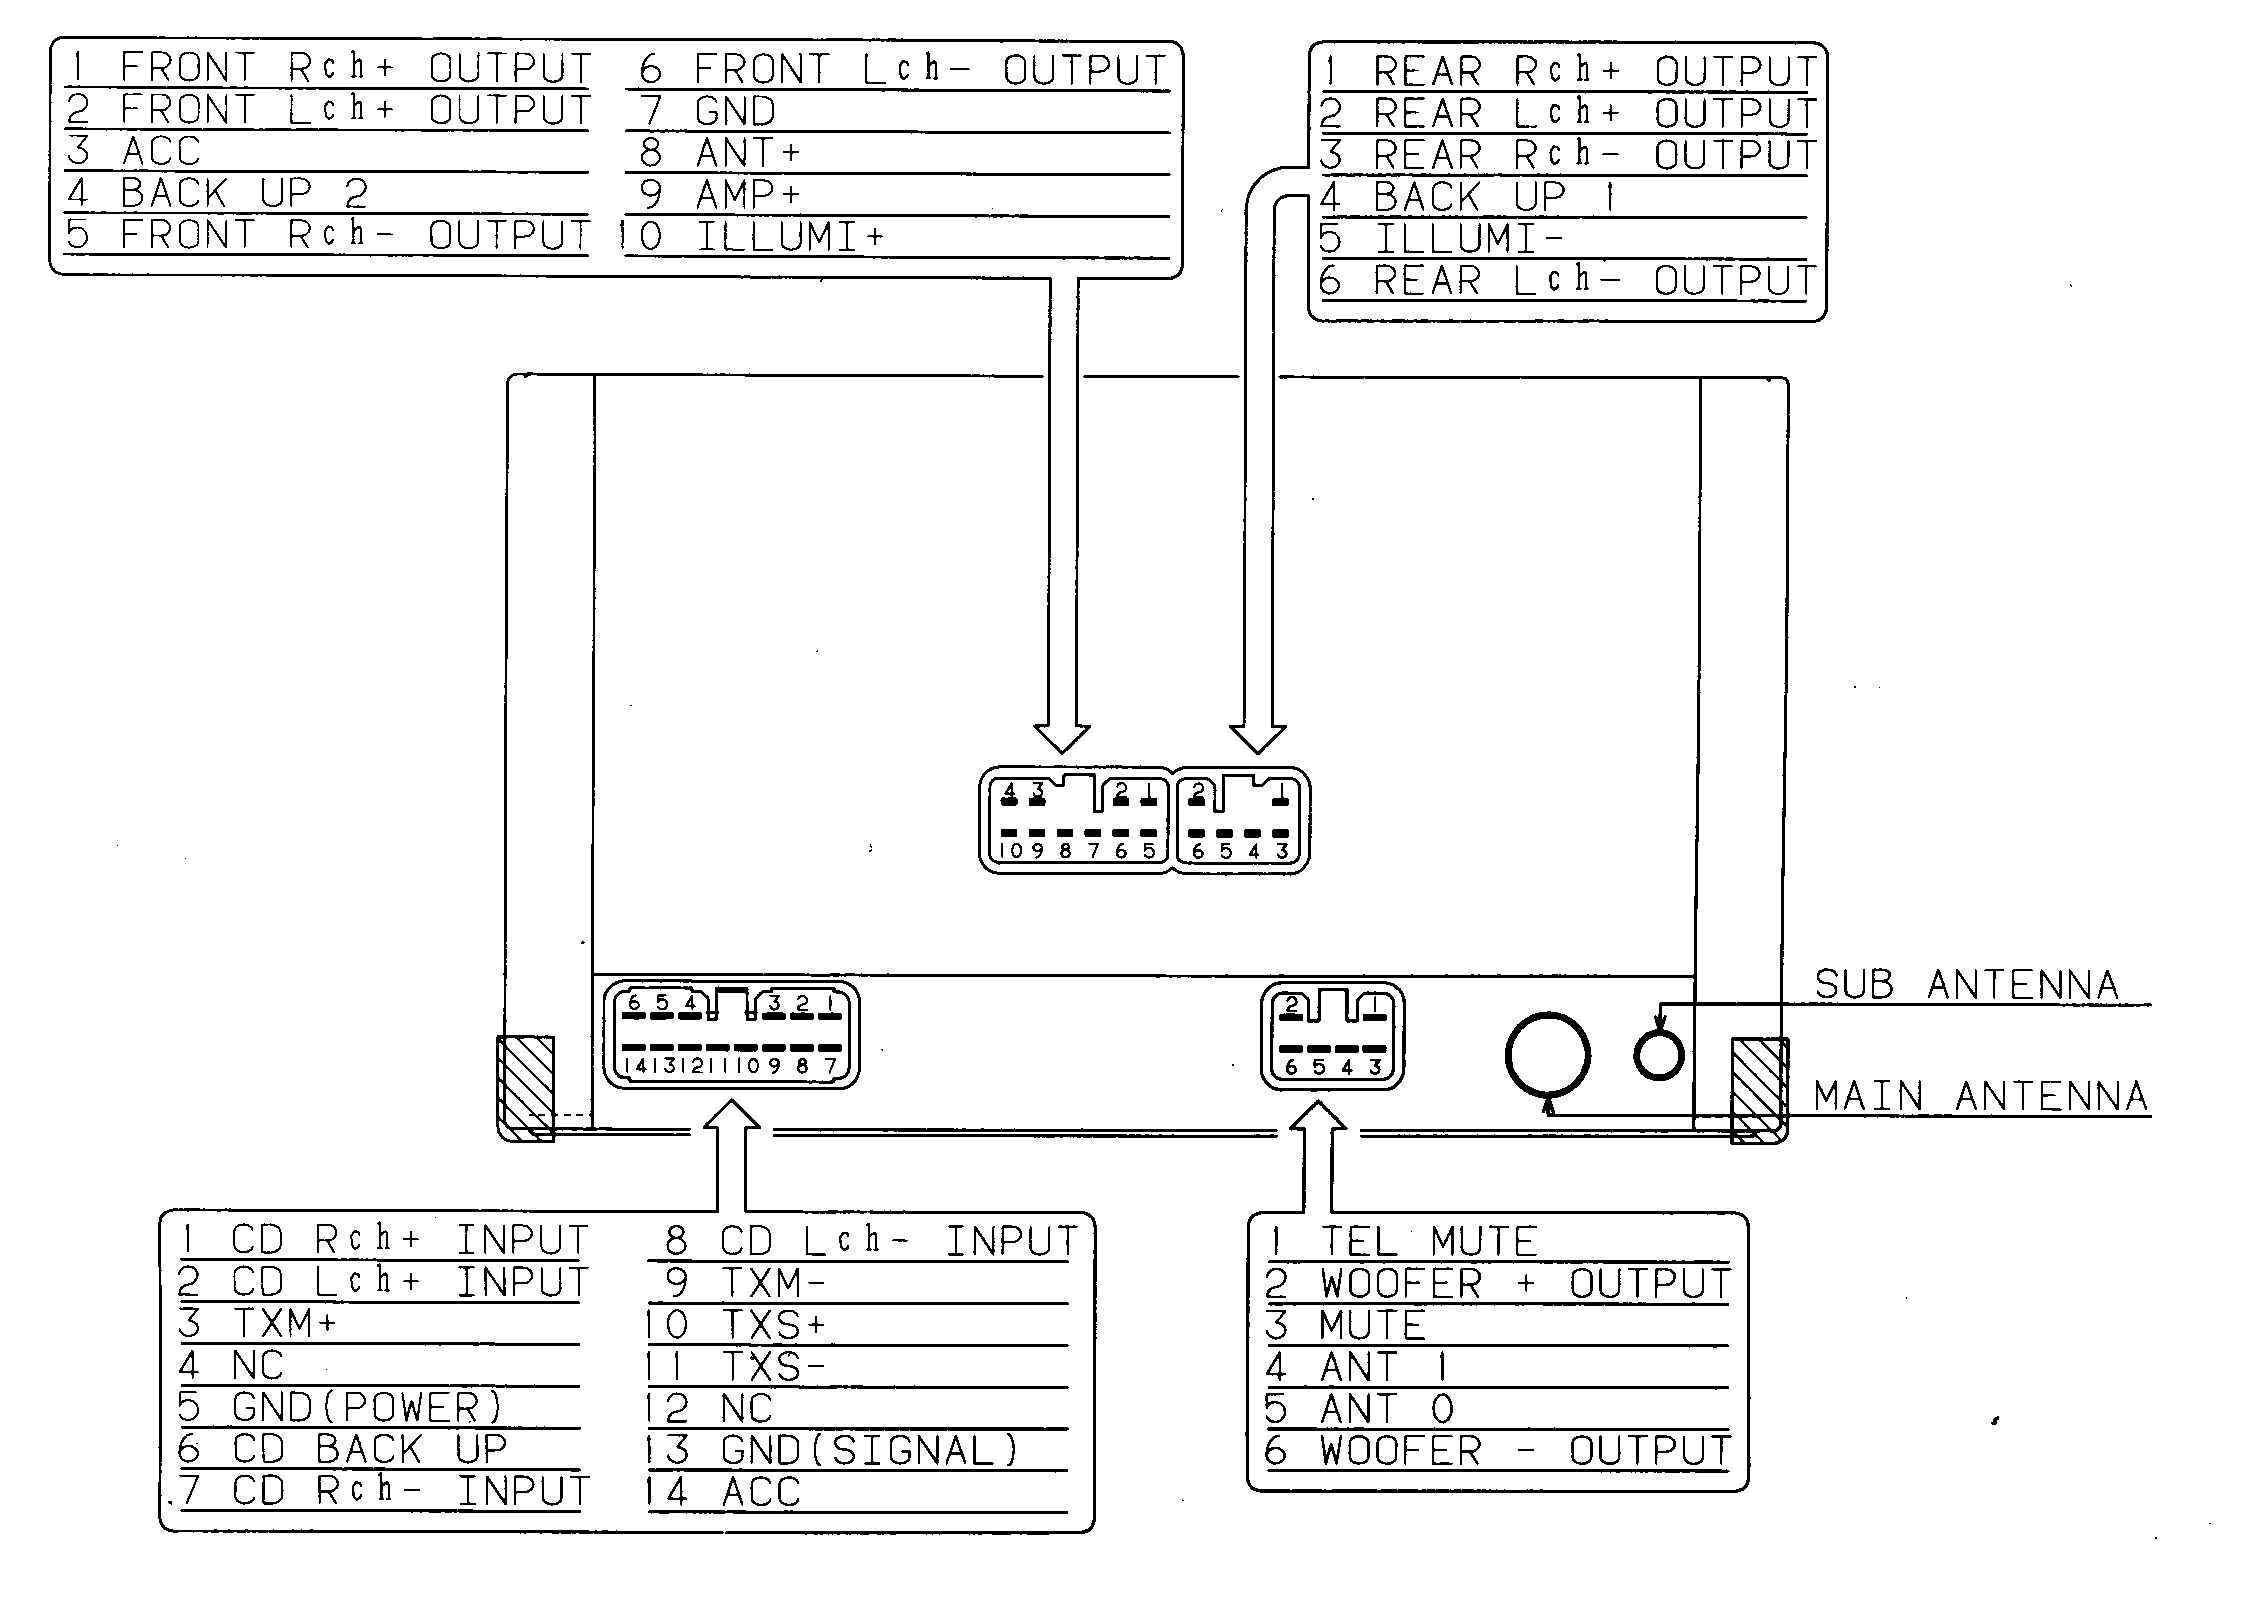 D8C9 1999 Toyota Radio Wiring Diagram Fujitsu | Wiring Resources Vdo Car Radio Wiring Diagram on vdo oil pressure sender wiring, vdo gauges diagram, vdo oil pressure gauge wiring, vdo tach installation, vdo tach wiring electric, vdo fuel pump, ford digital speedometer diagram, vdo tachometer wiring,